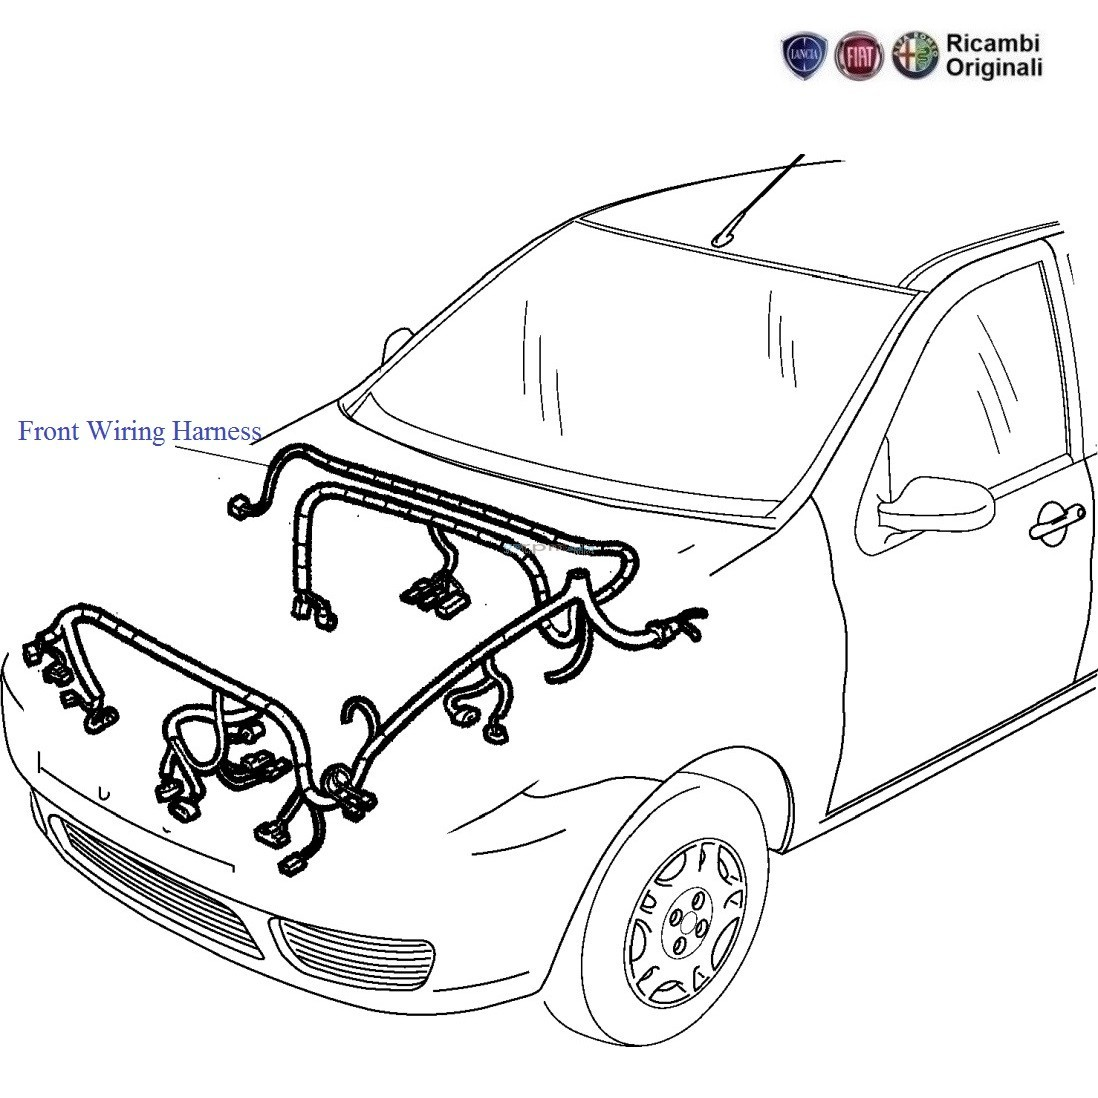 Fiat Palio Stile 1.1 Petrol: Front Wiring Harness